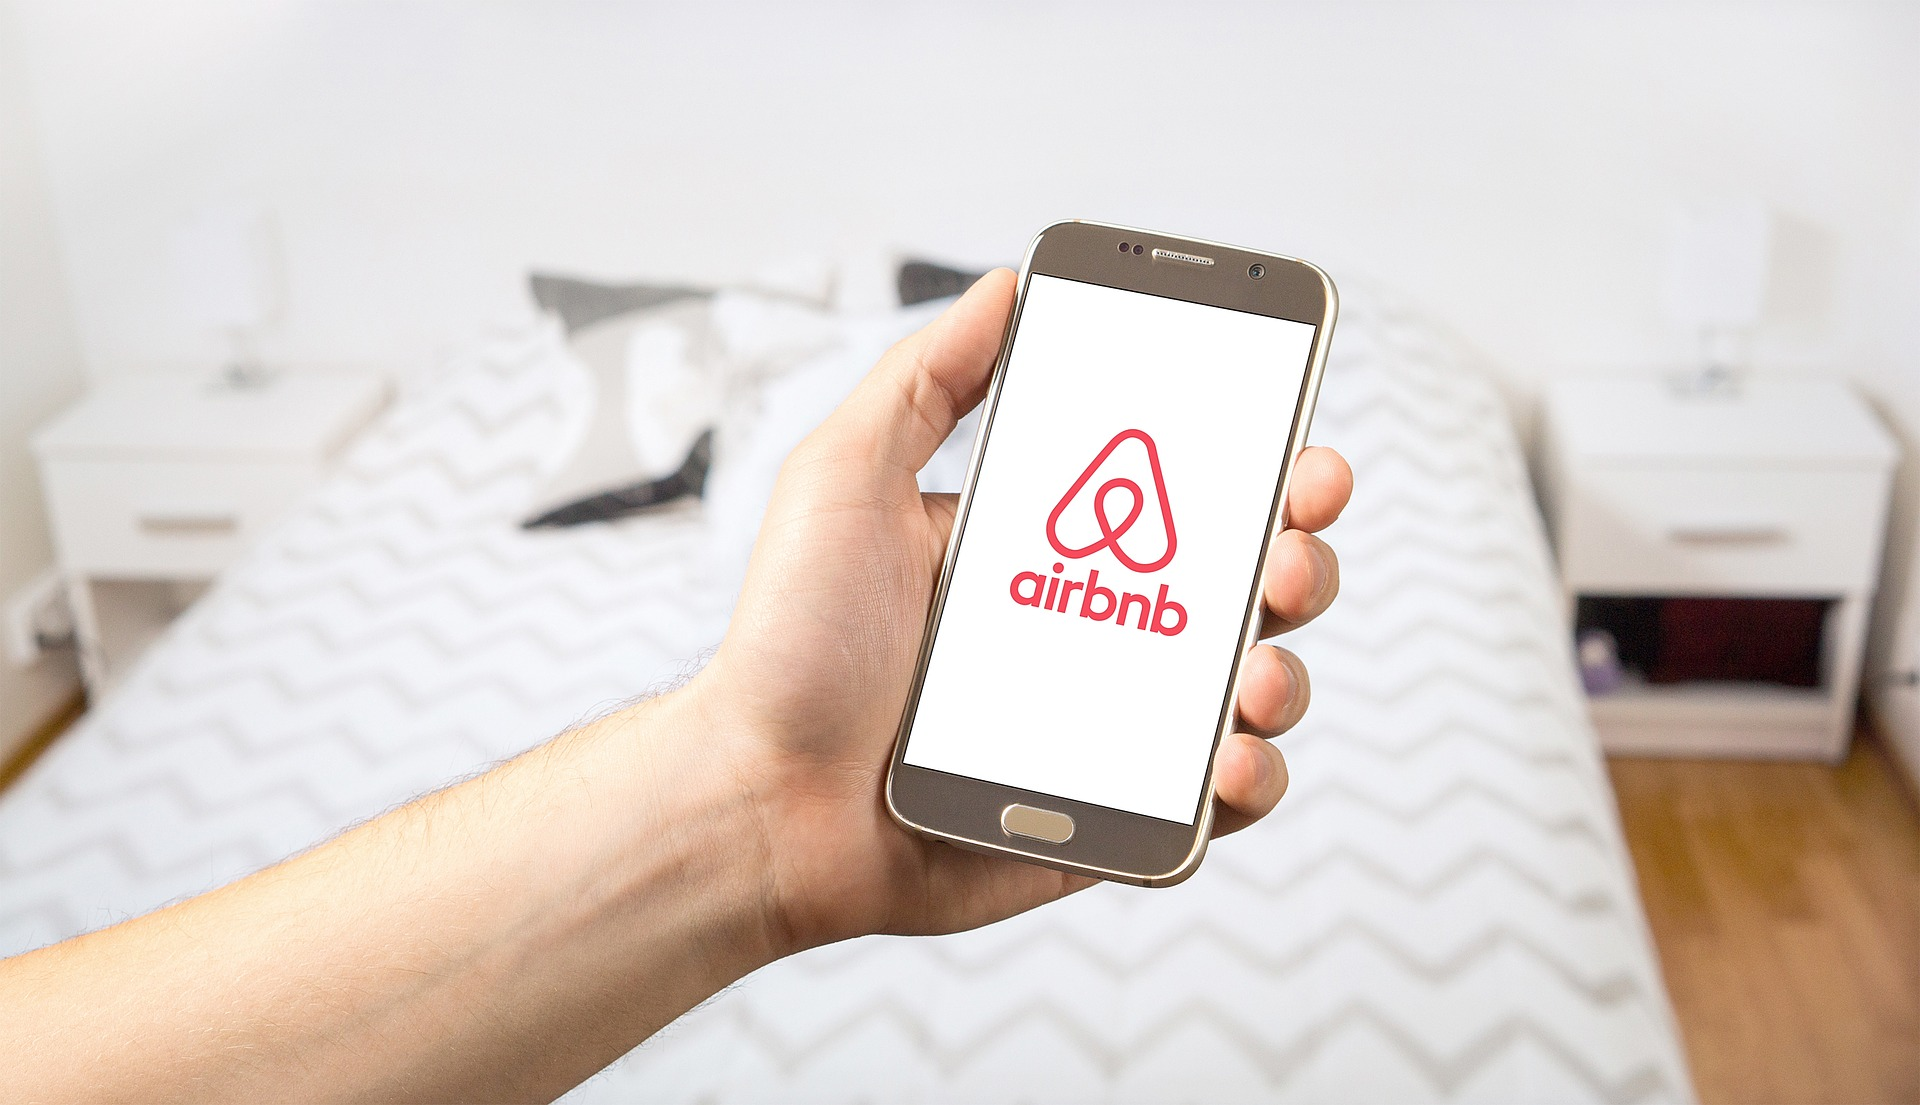 How are Airbnb's announcements likely to impact hotel distribution online